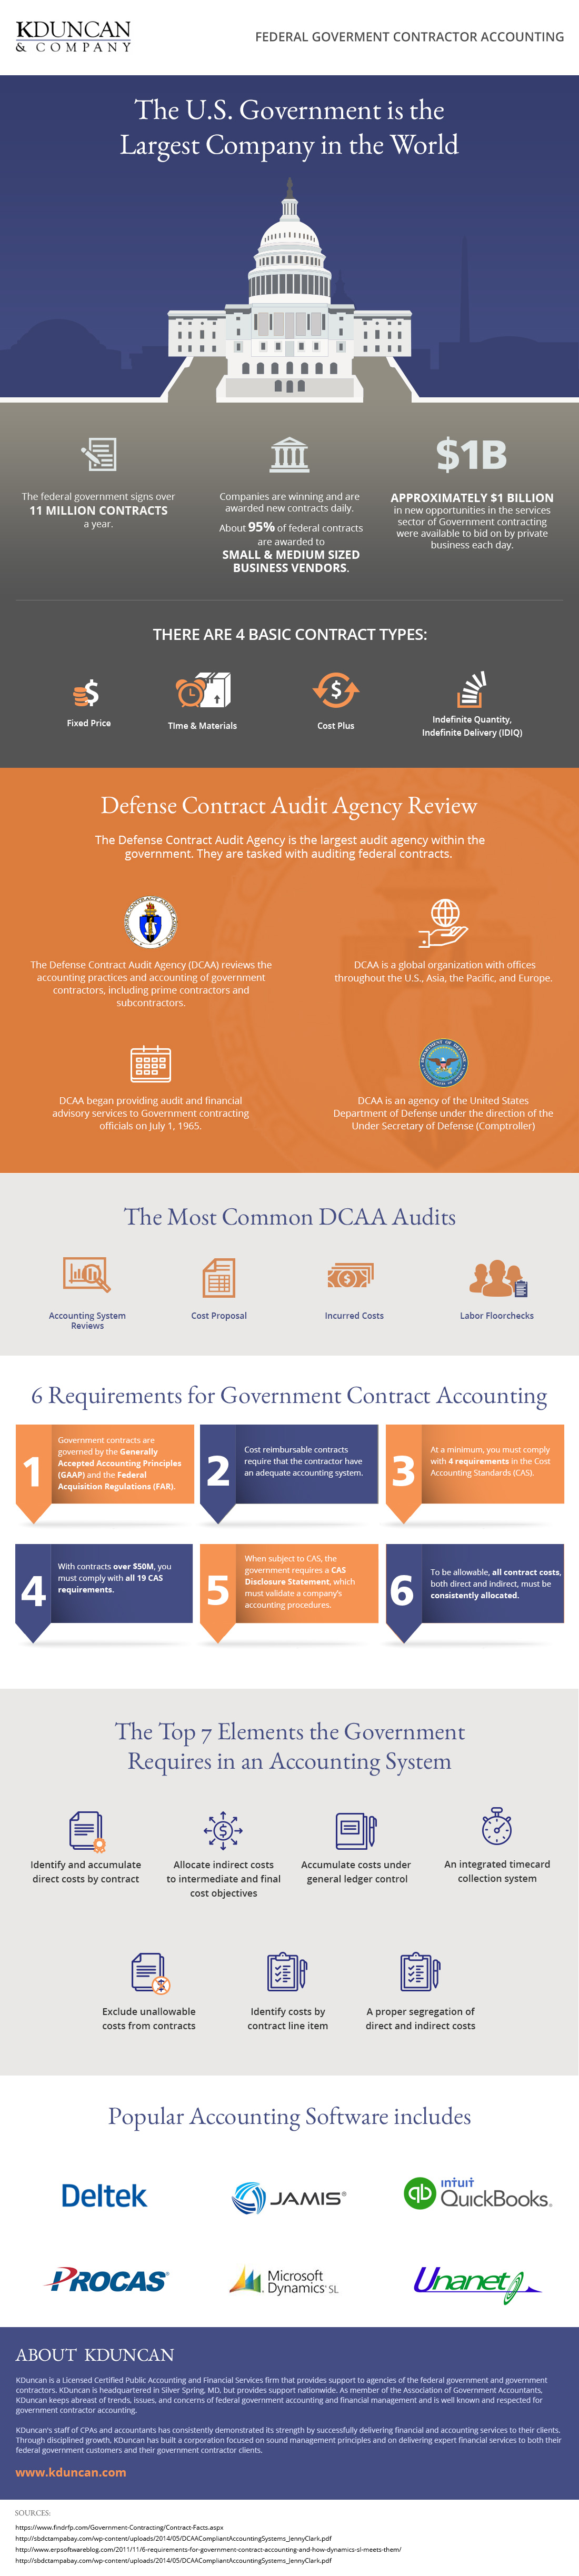 Federal Government Contractor Accounting